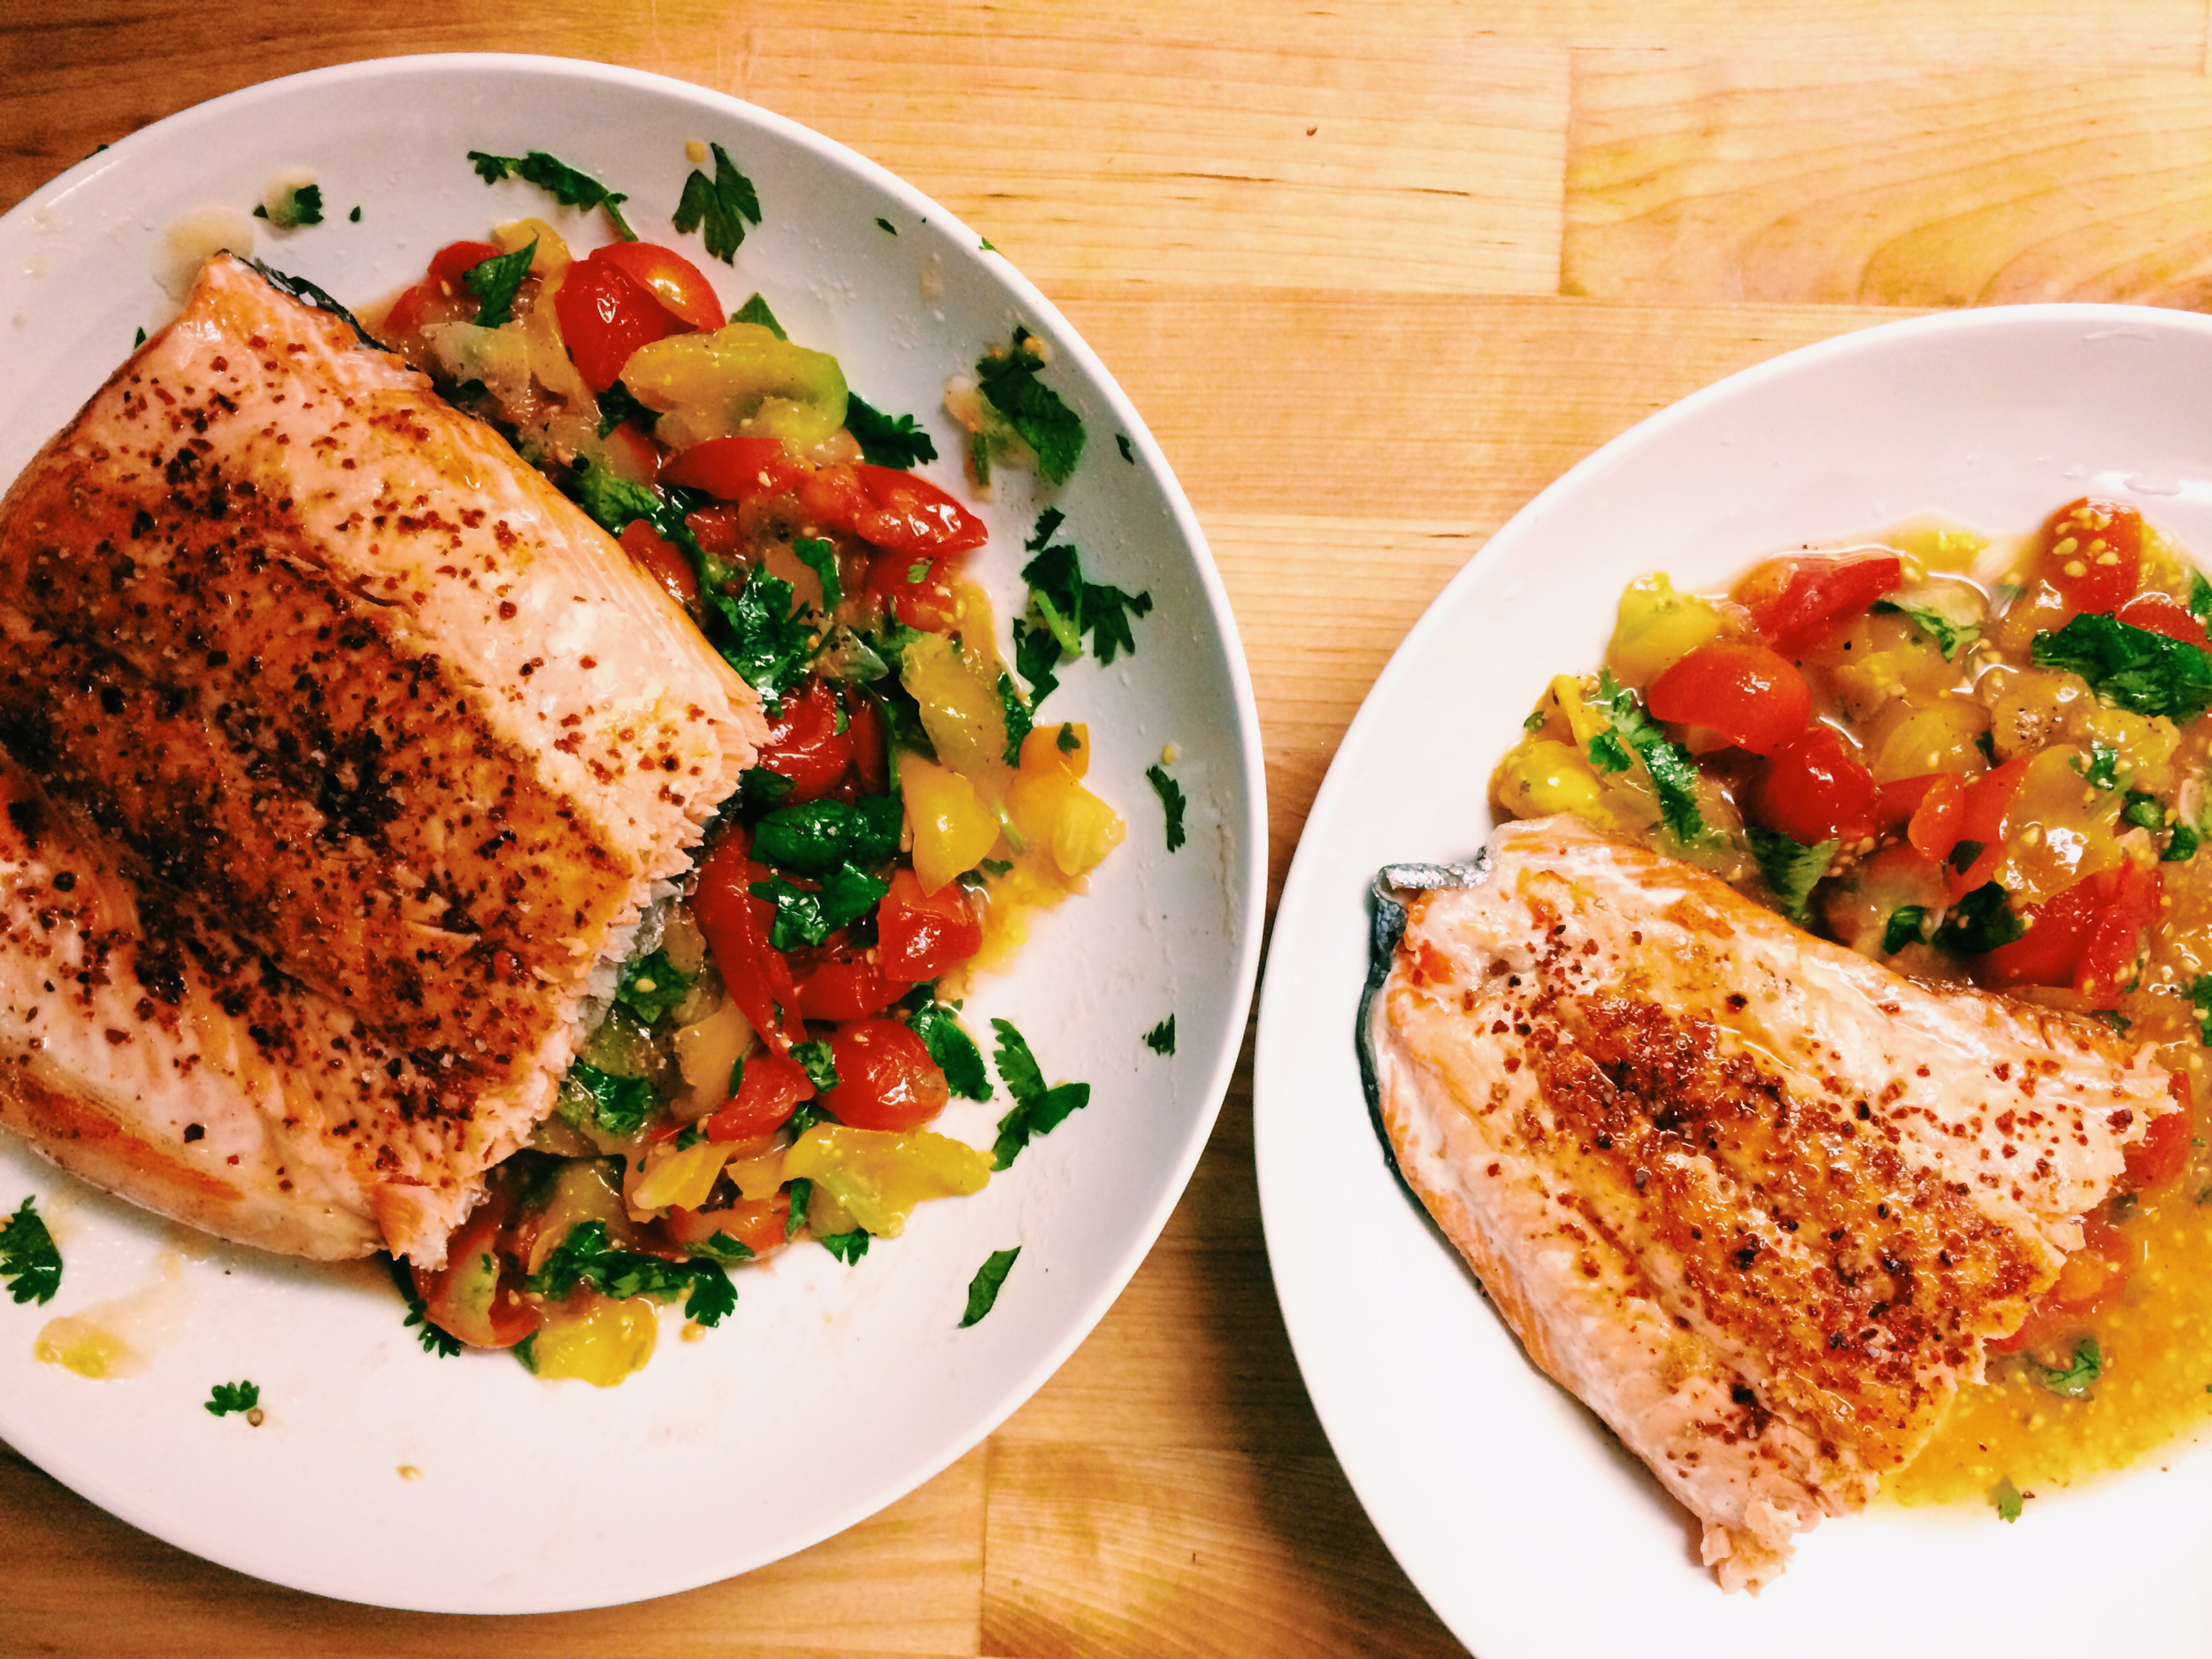 SALMON WITH FRESH TOMATOES